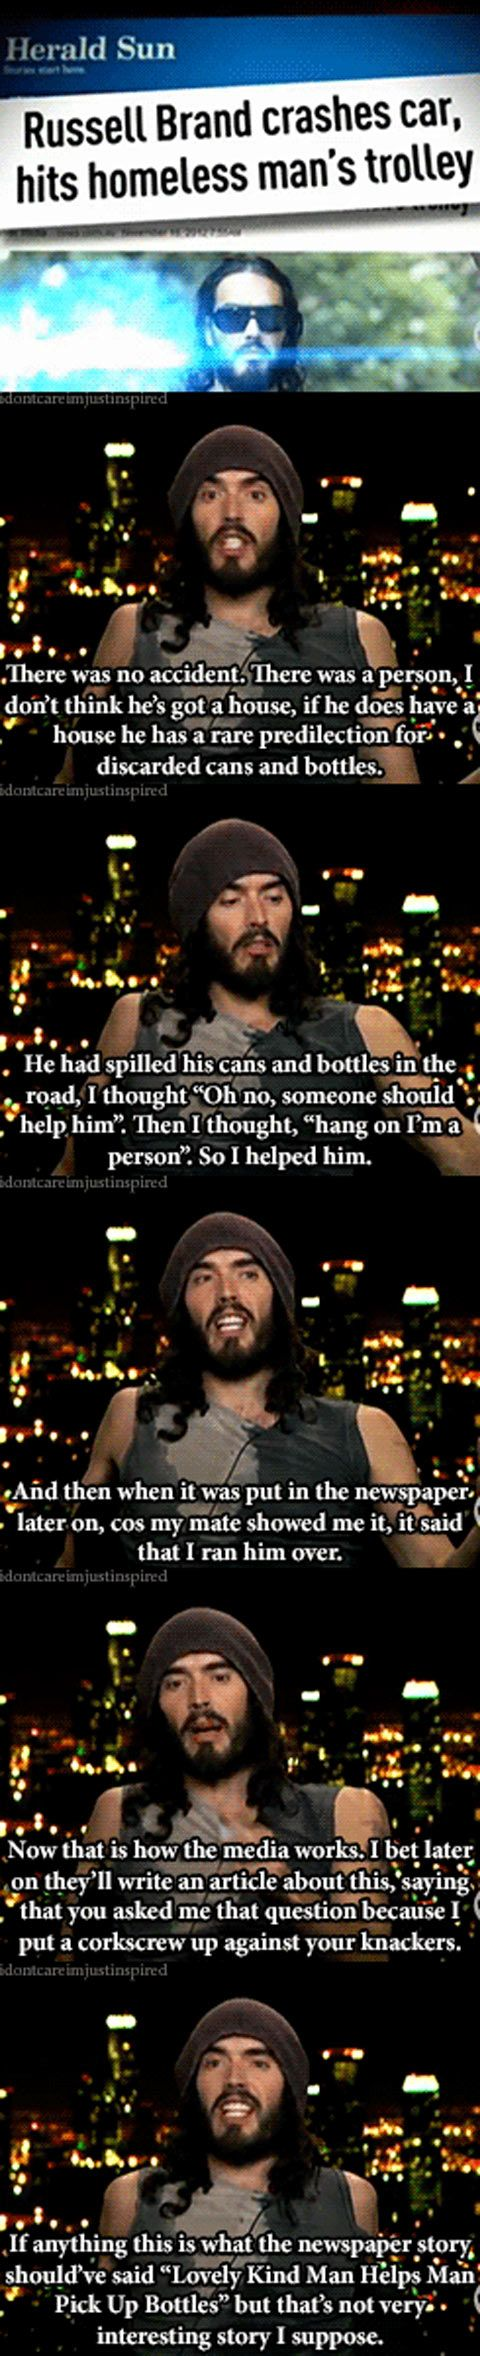 No one likes good news apparently. I don't like Russel Brand personally, but he's spot on about this.